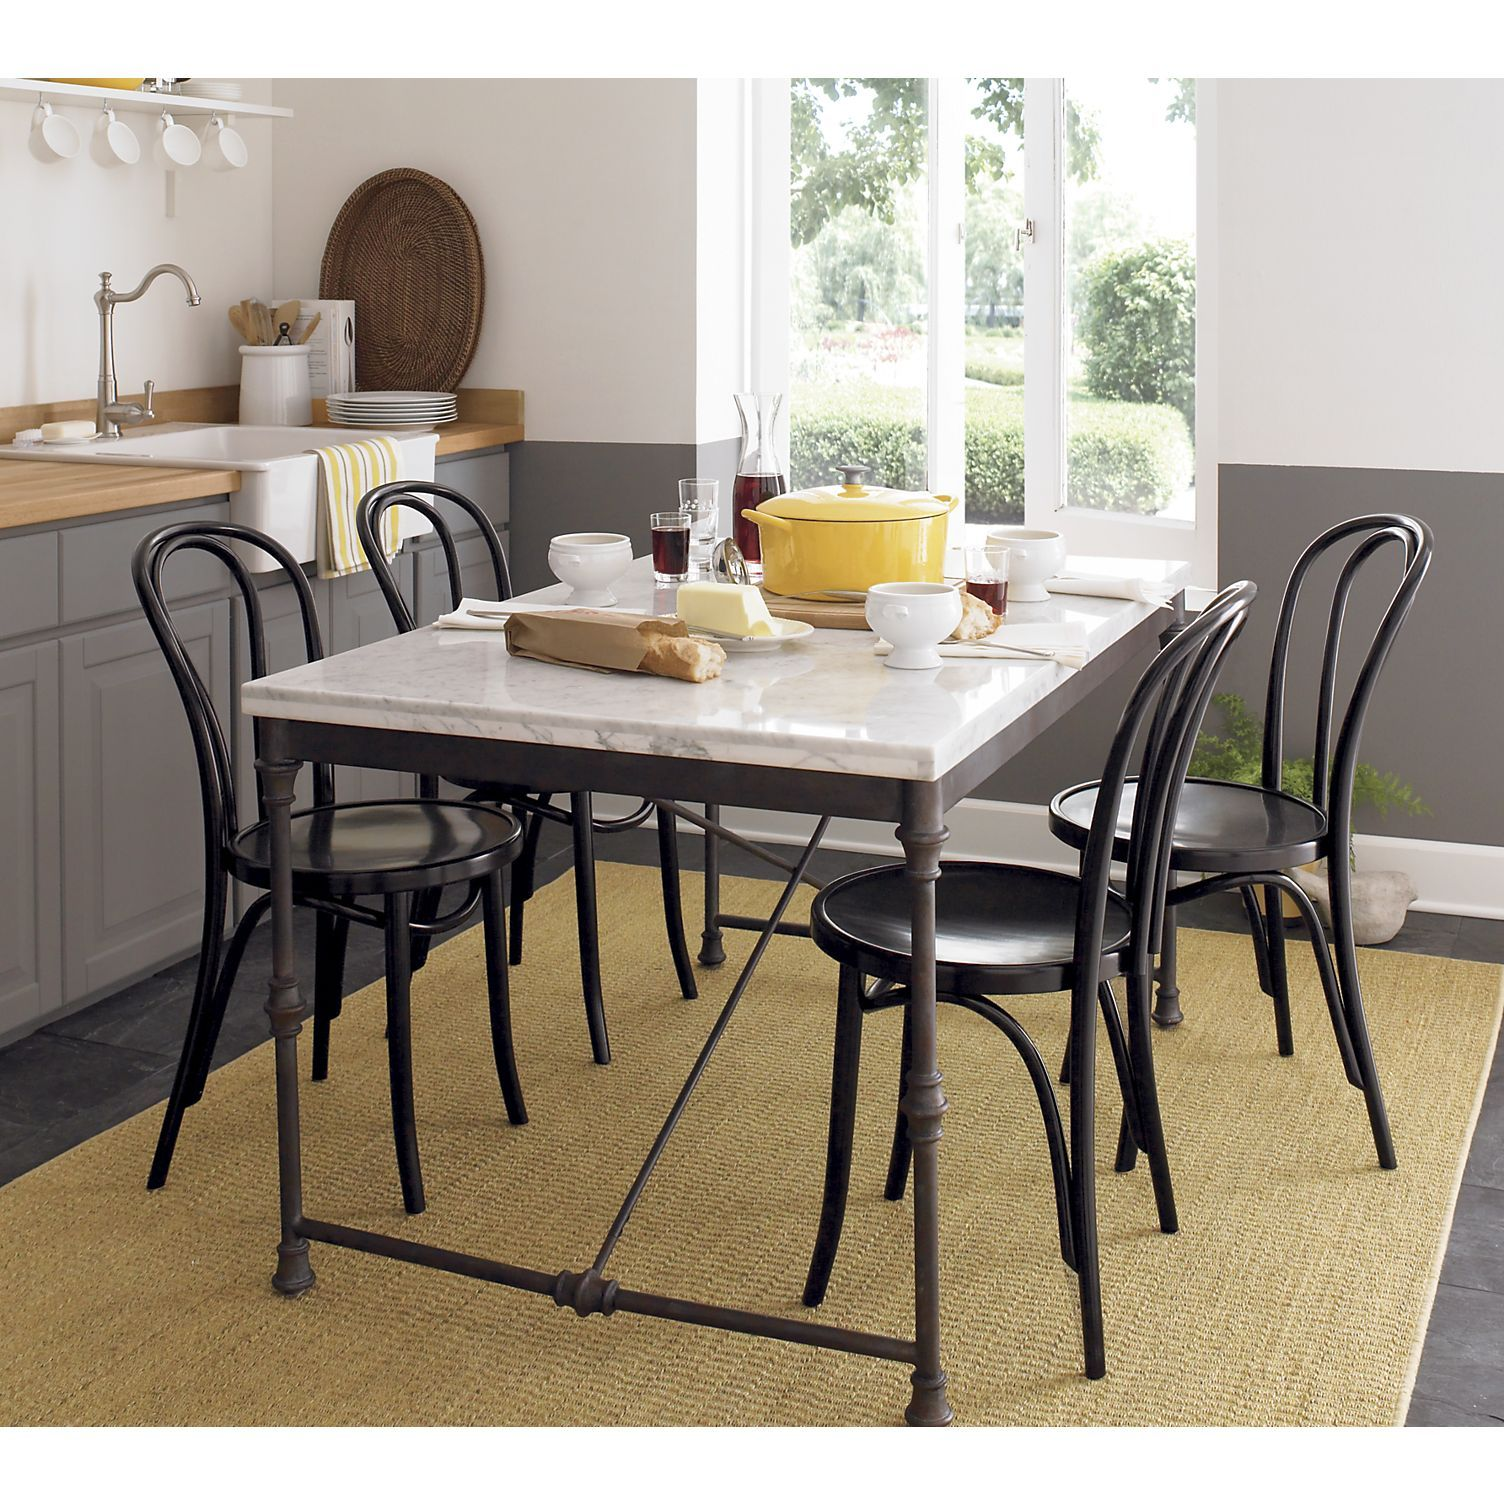 French Kitchen Table | Country Dining Rm in 2019 | Kitchen ...